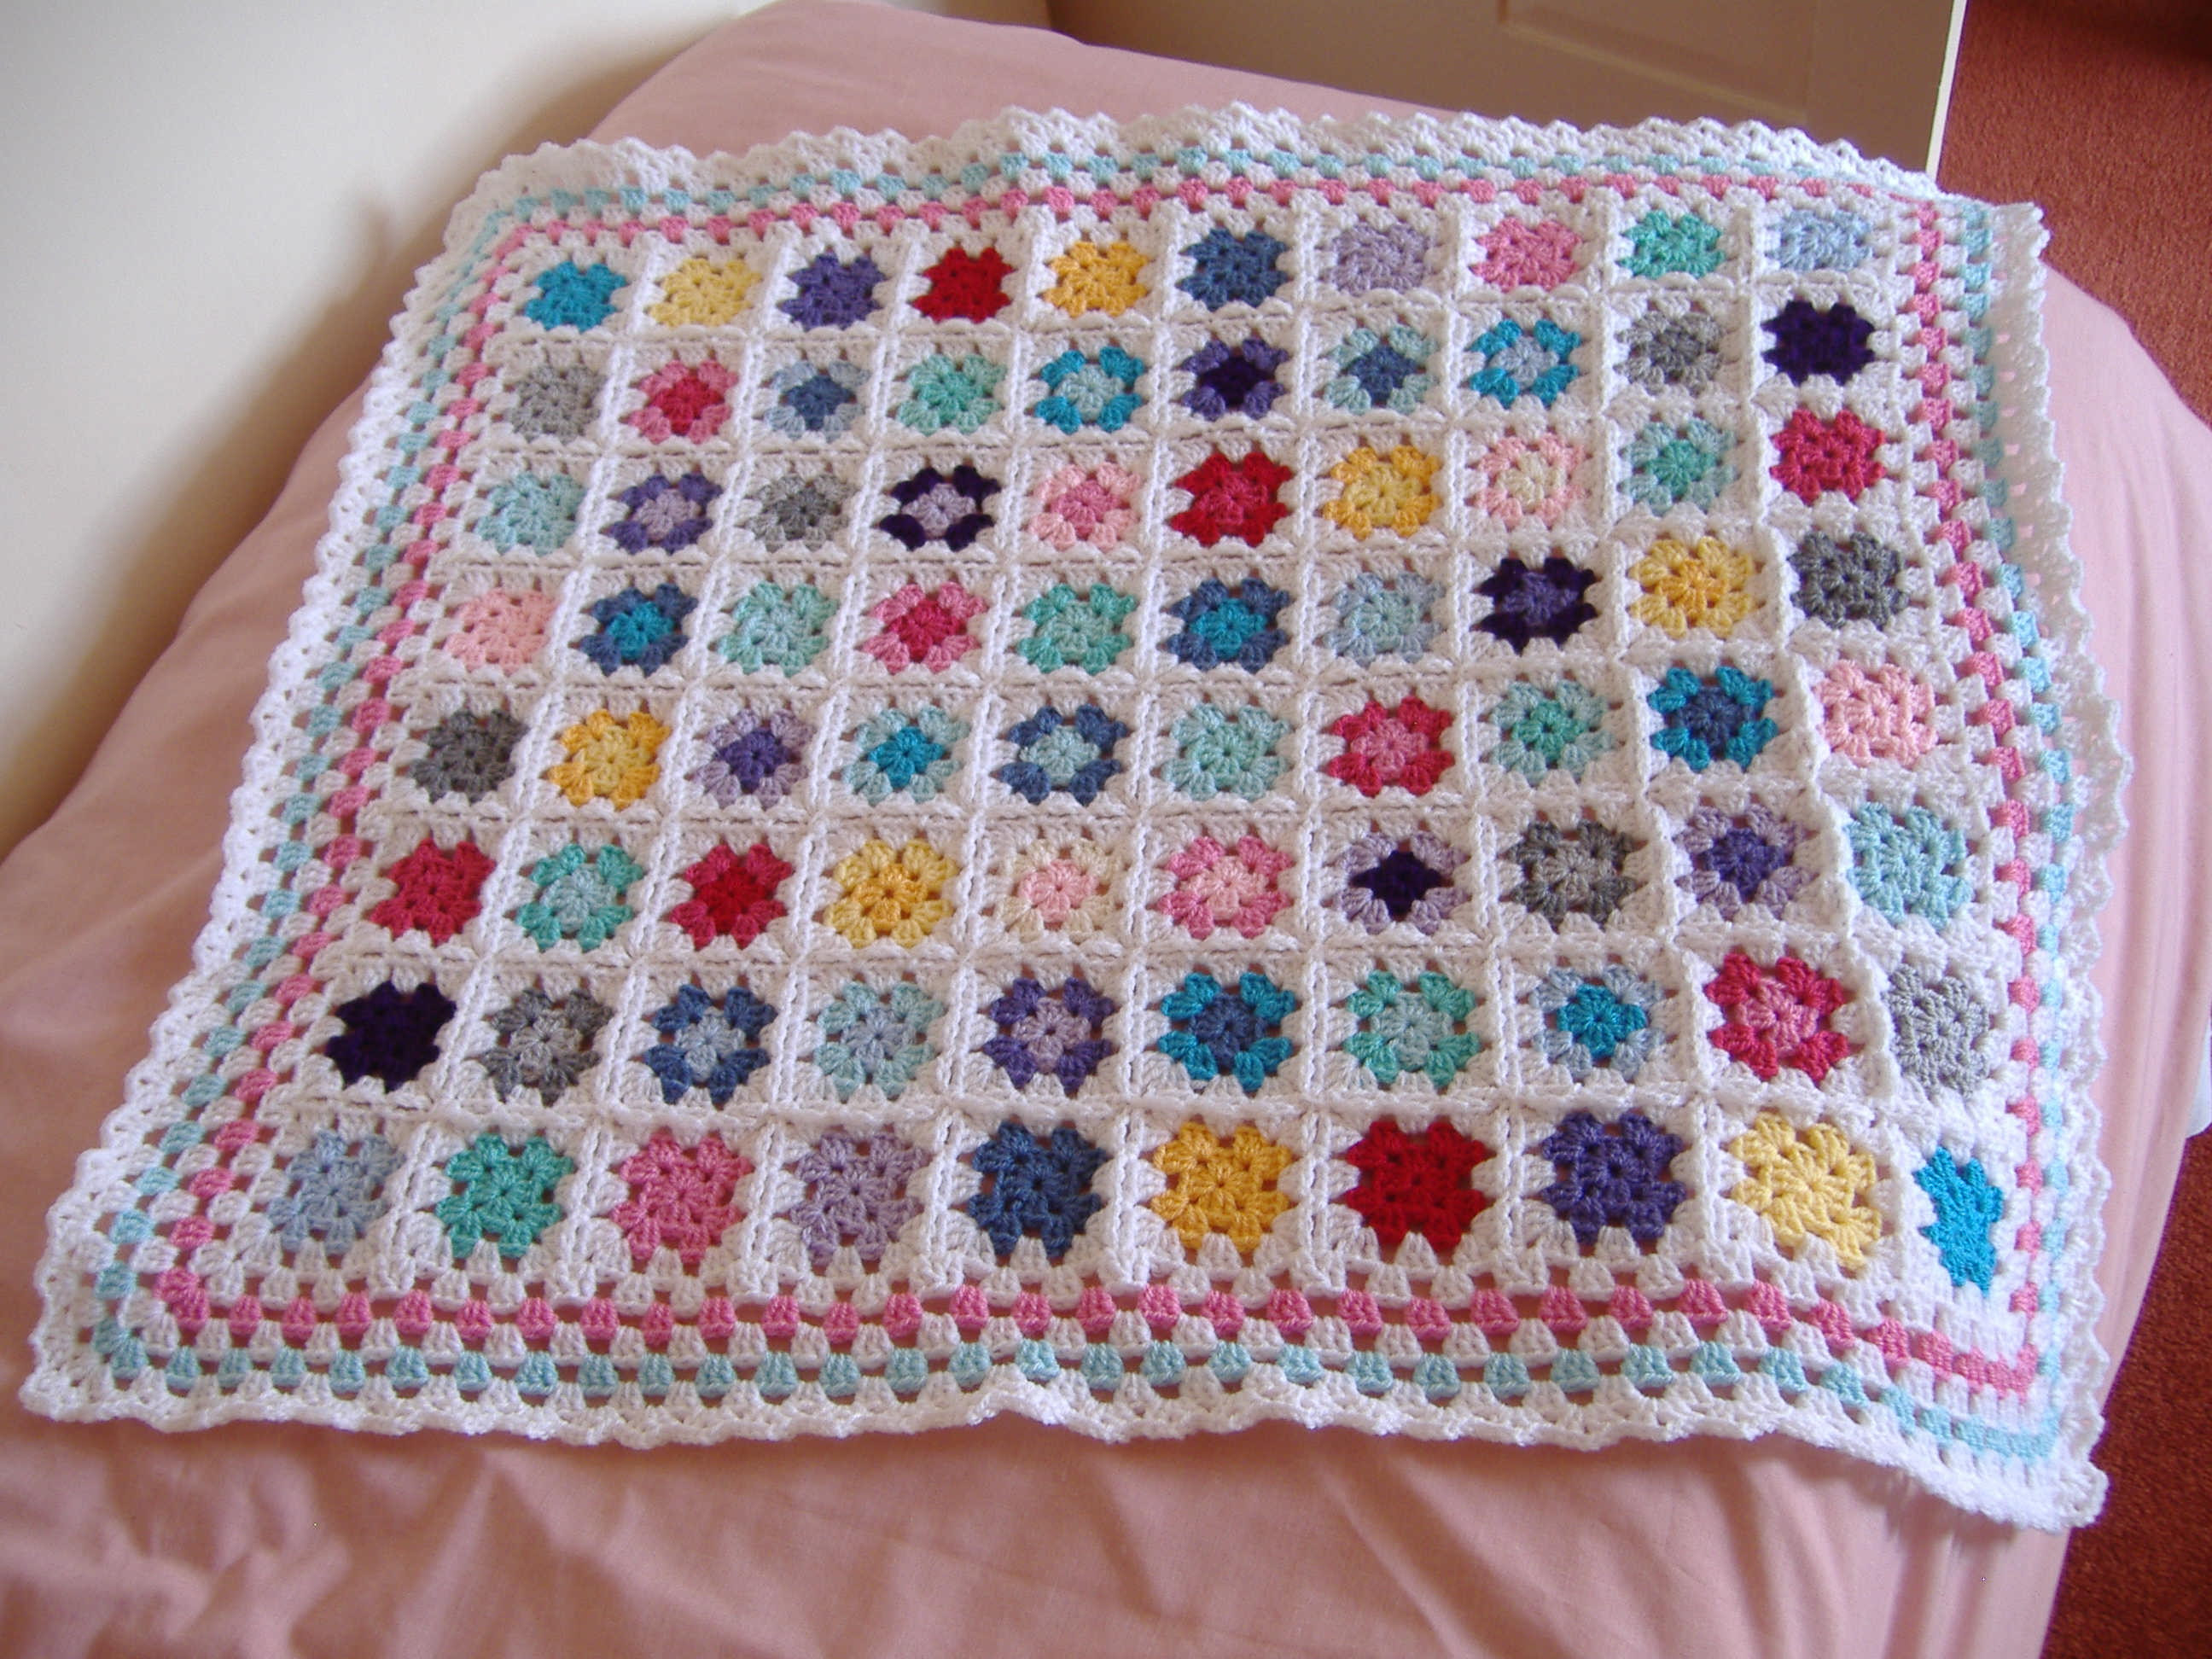 Lovely Free Crochet Patterns for Granny Square Baby Blankets Free Crochet Granny Square Baby Blanket Patterns Of Contemporary 45 Pictures Free Crochet Granny Square Baby Blanket Patterns